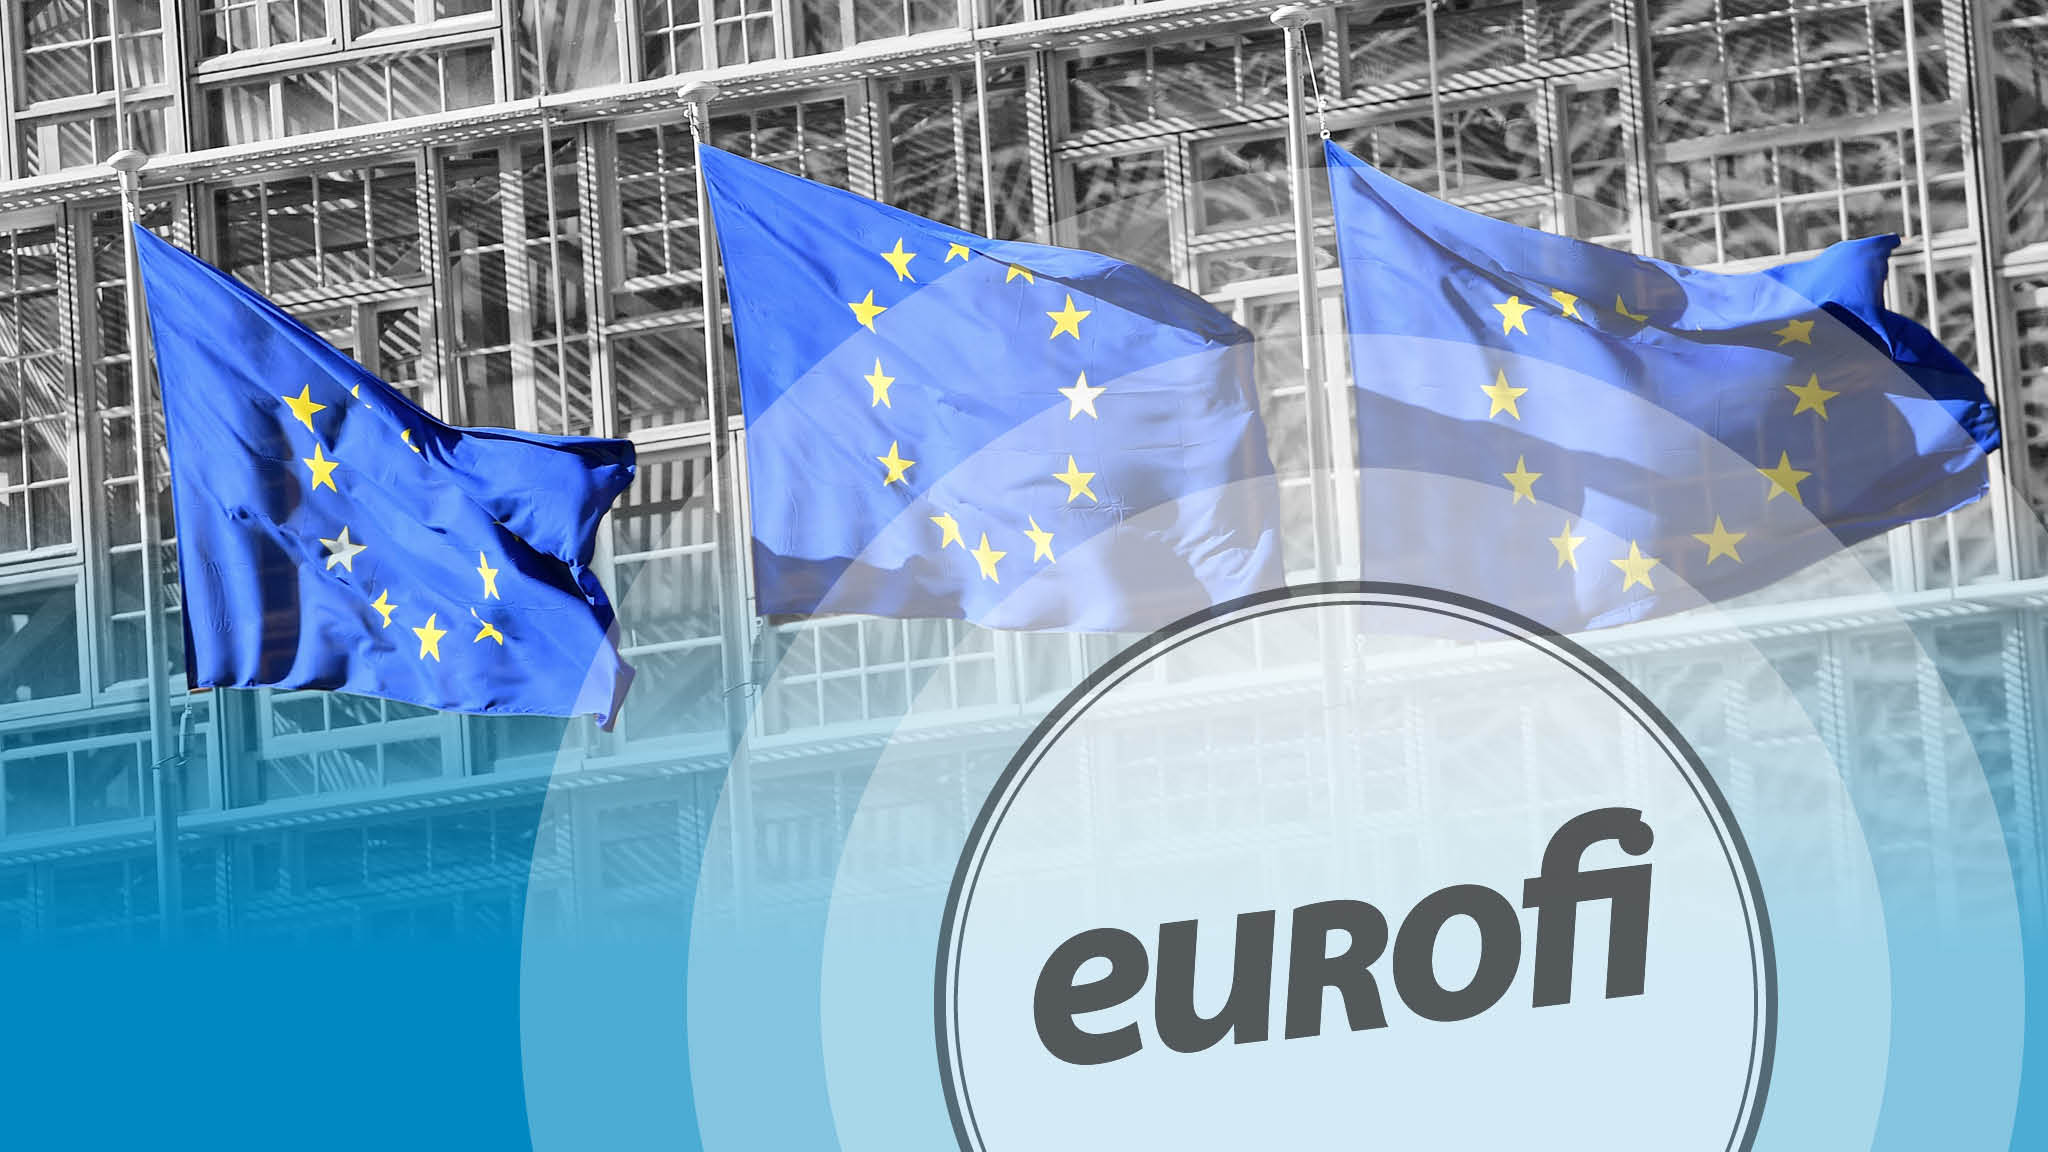 Eurofi: inside the think-tank at the heart of the EU